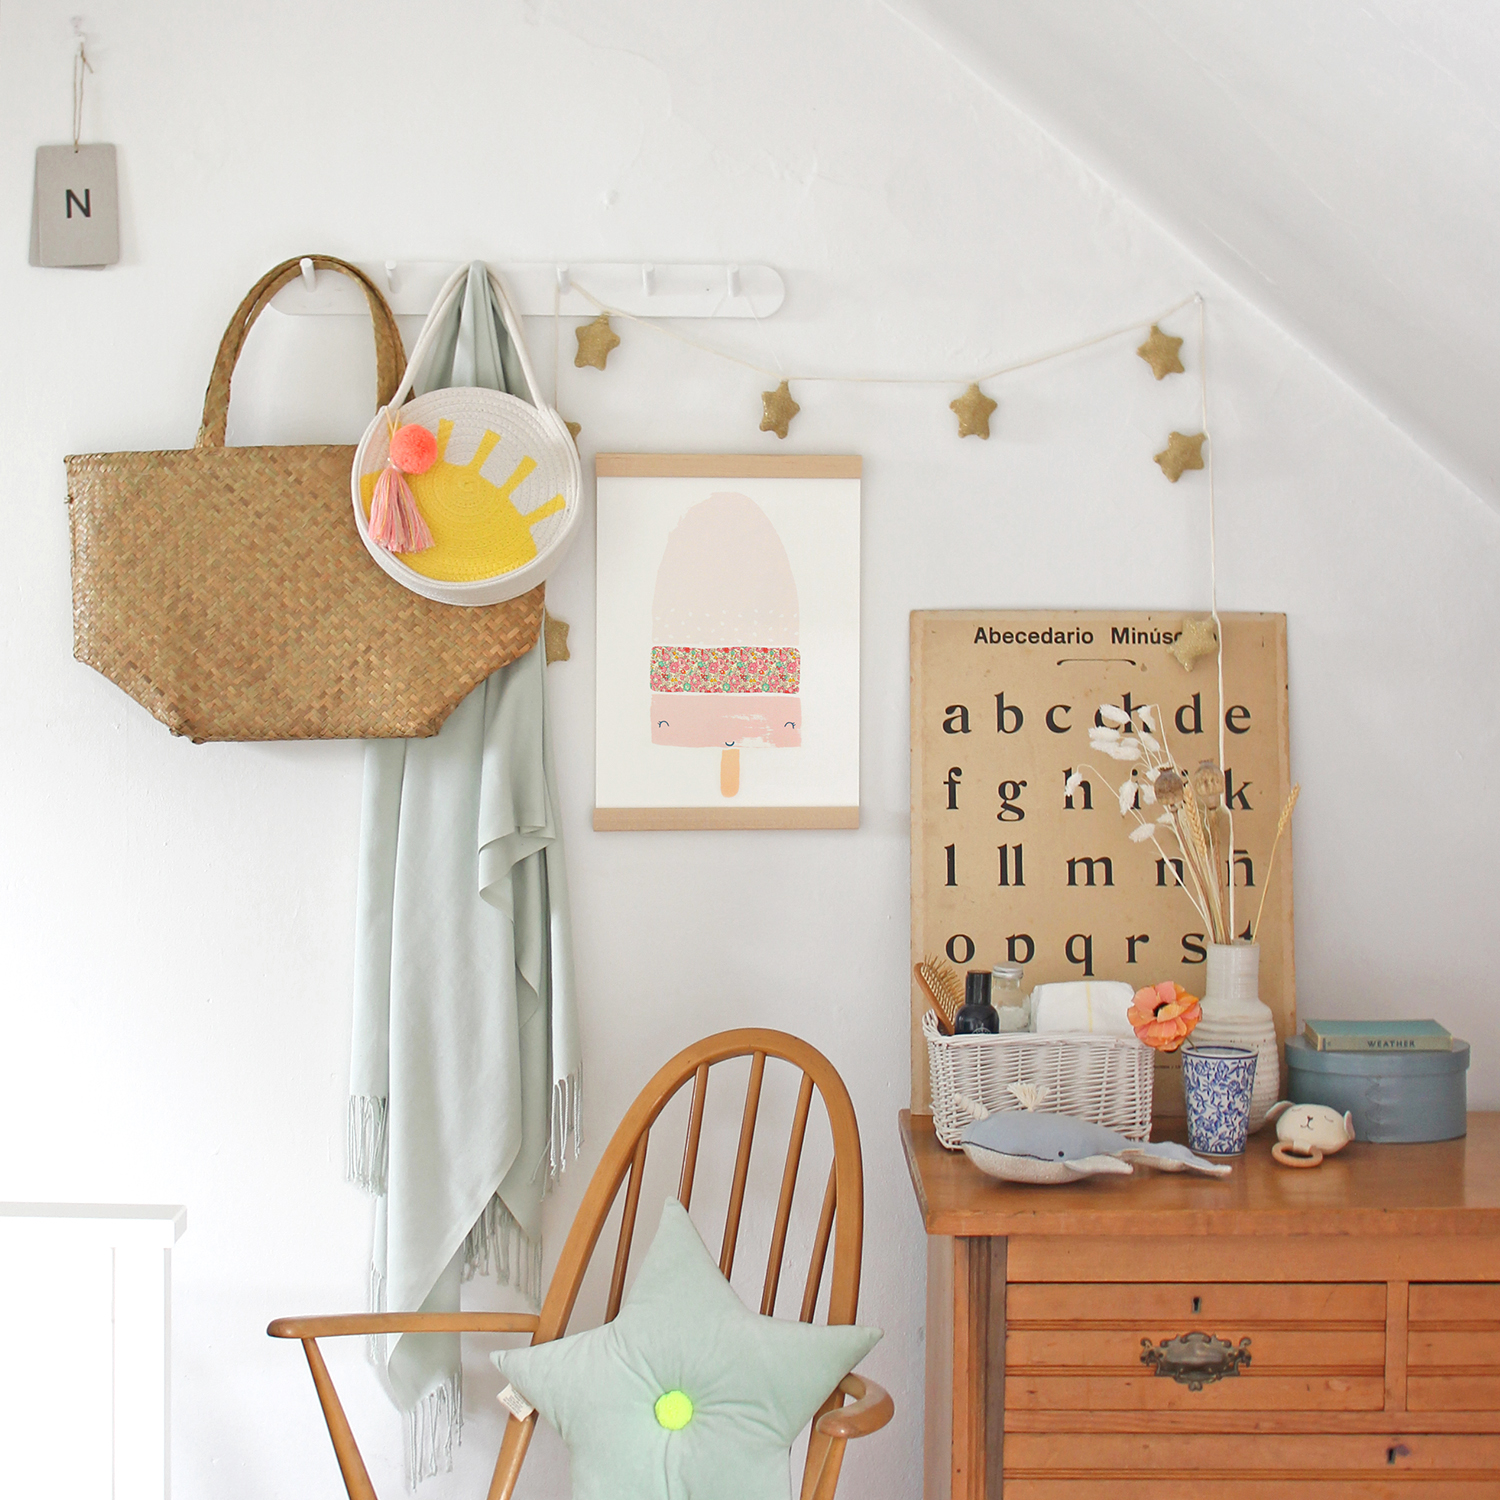 The-Charming-Press-product-photography-nancy-straughan-nursery-prints-art-styling-kids.jpg